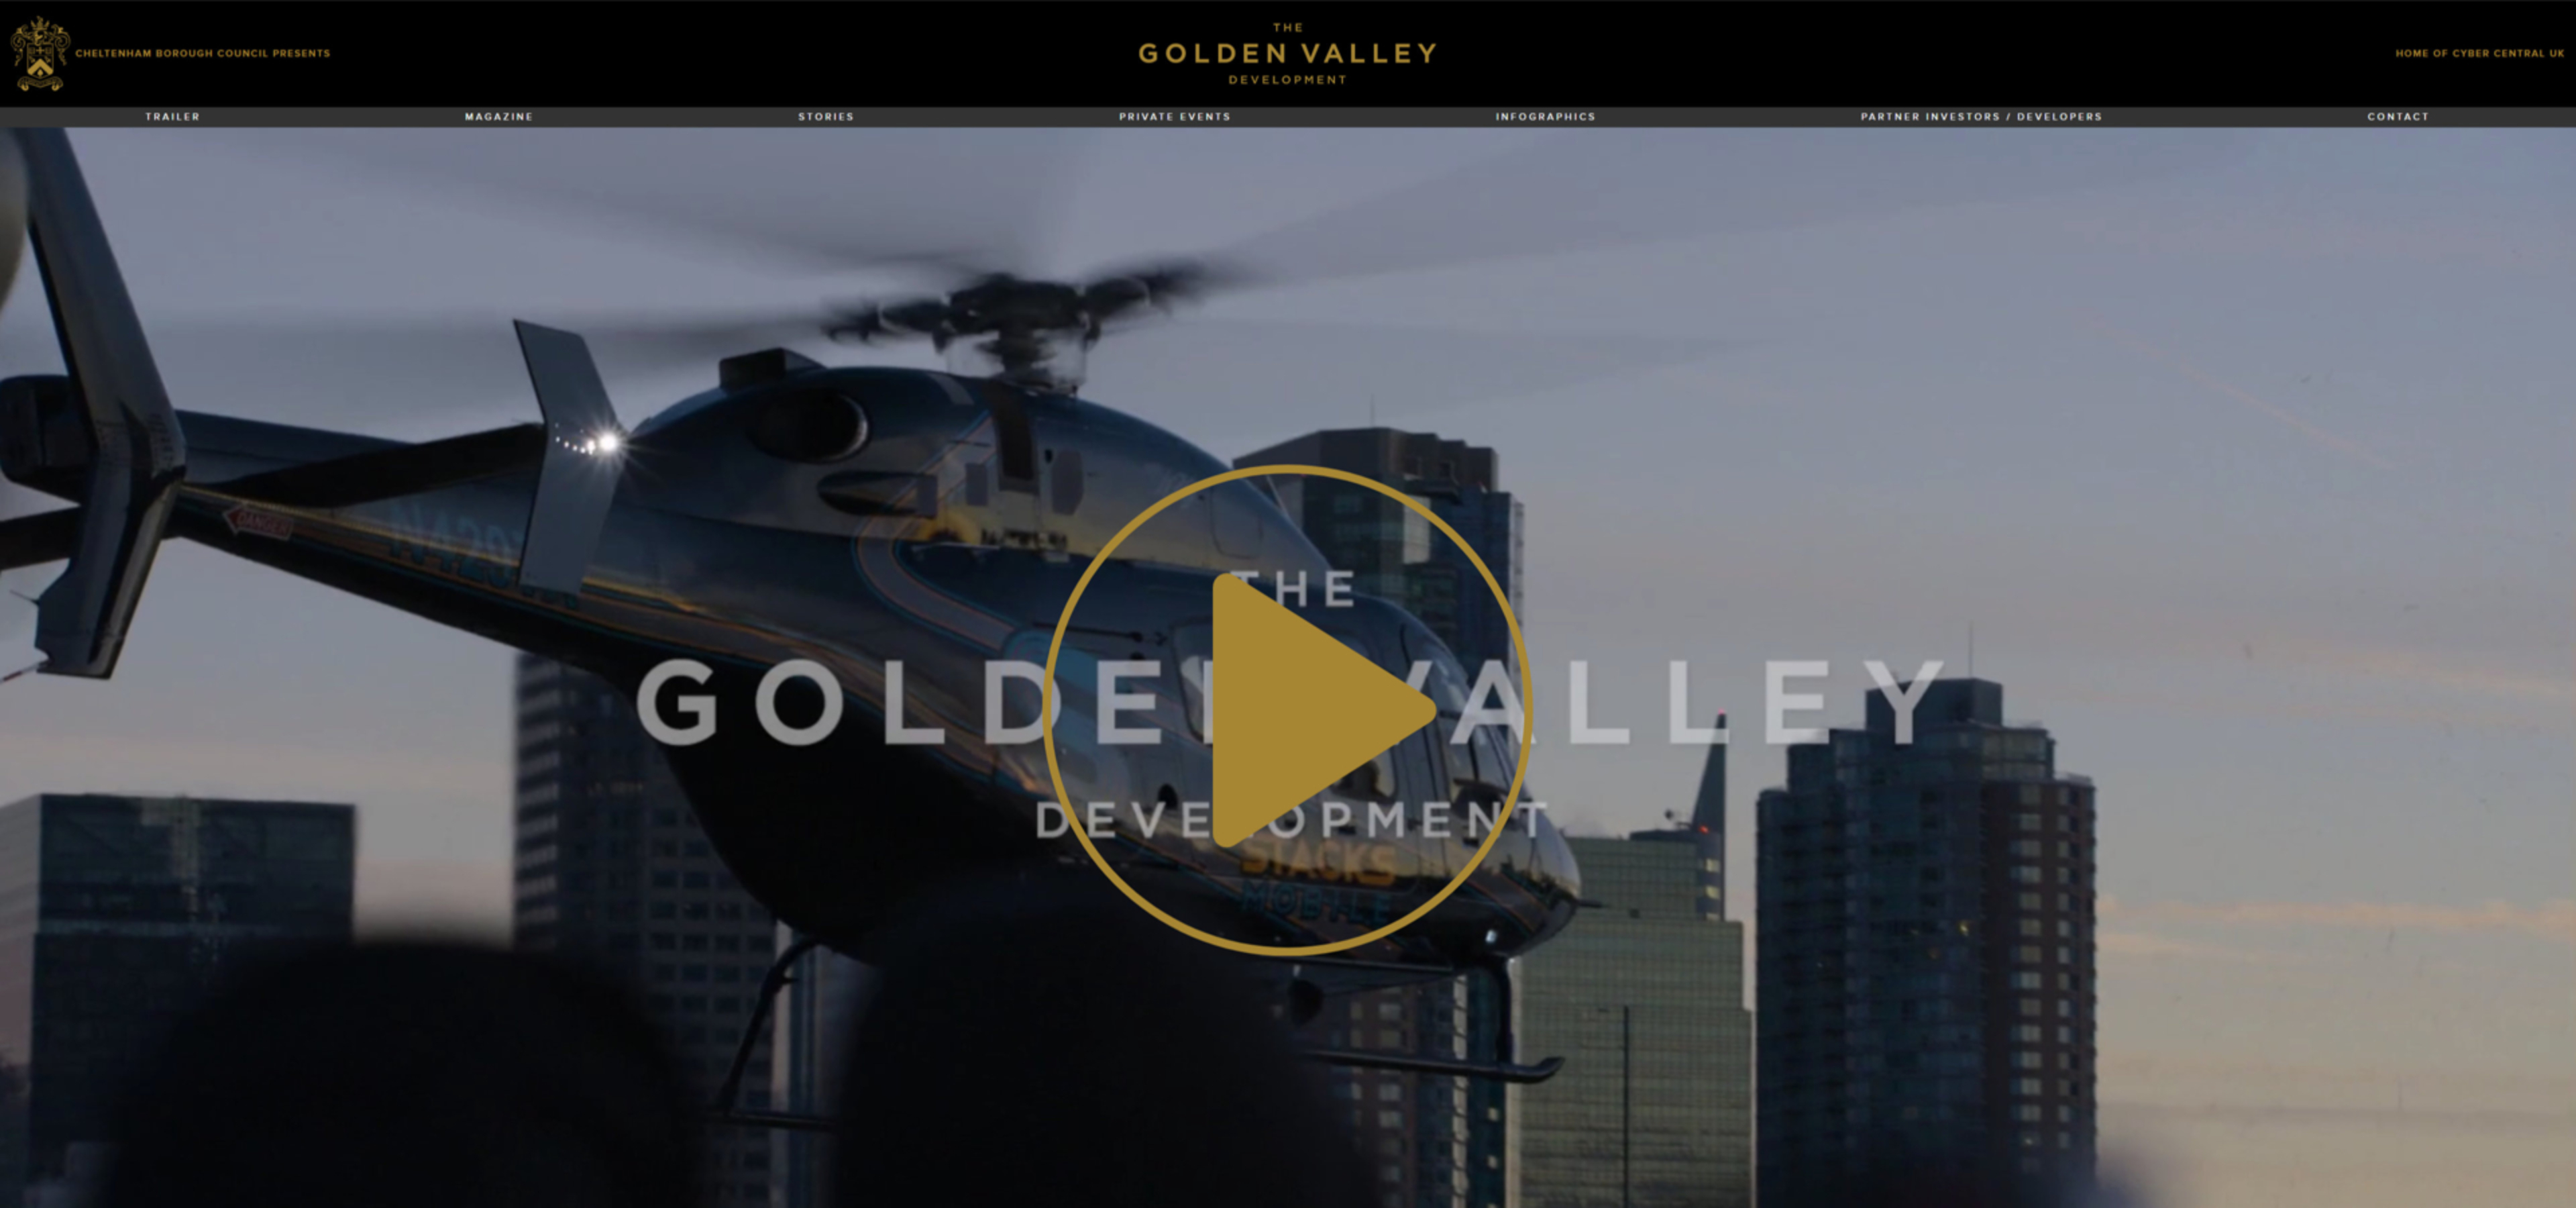 Golden Valley Development | Cyber Central UK | Website Build 2020 | Tang Marketing